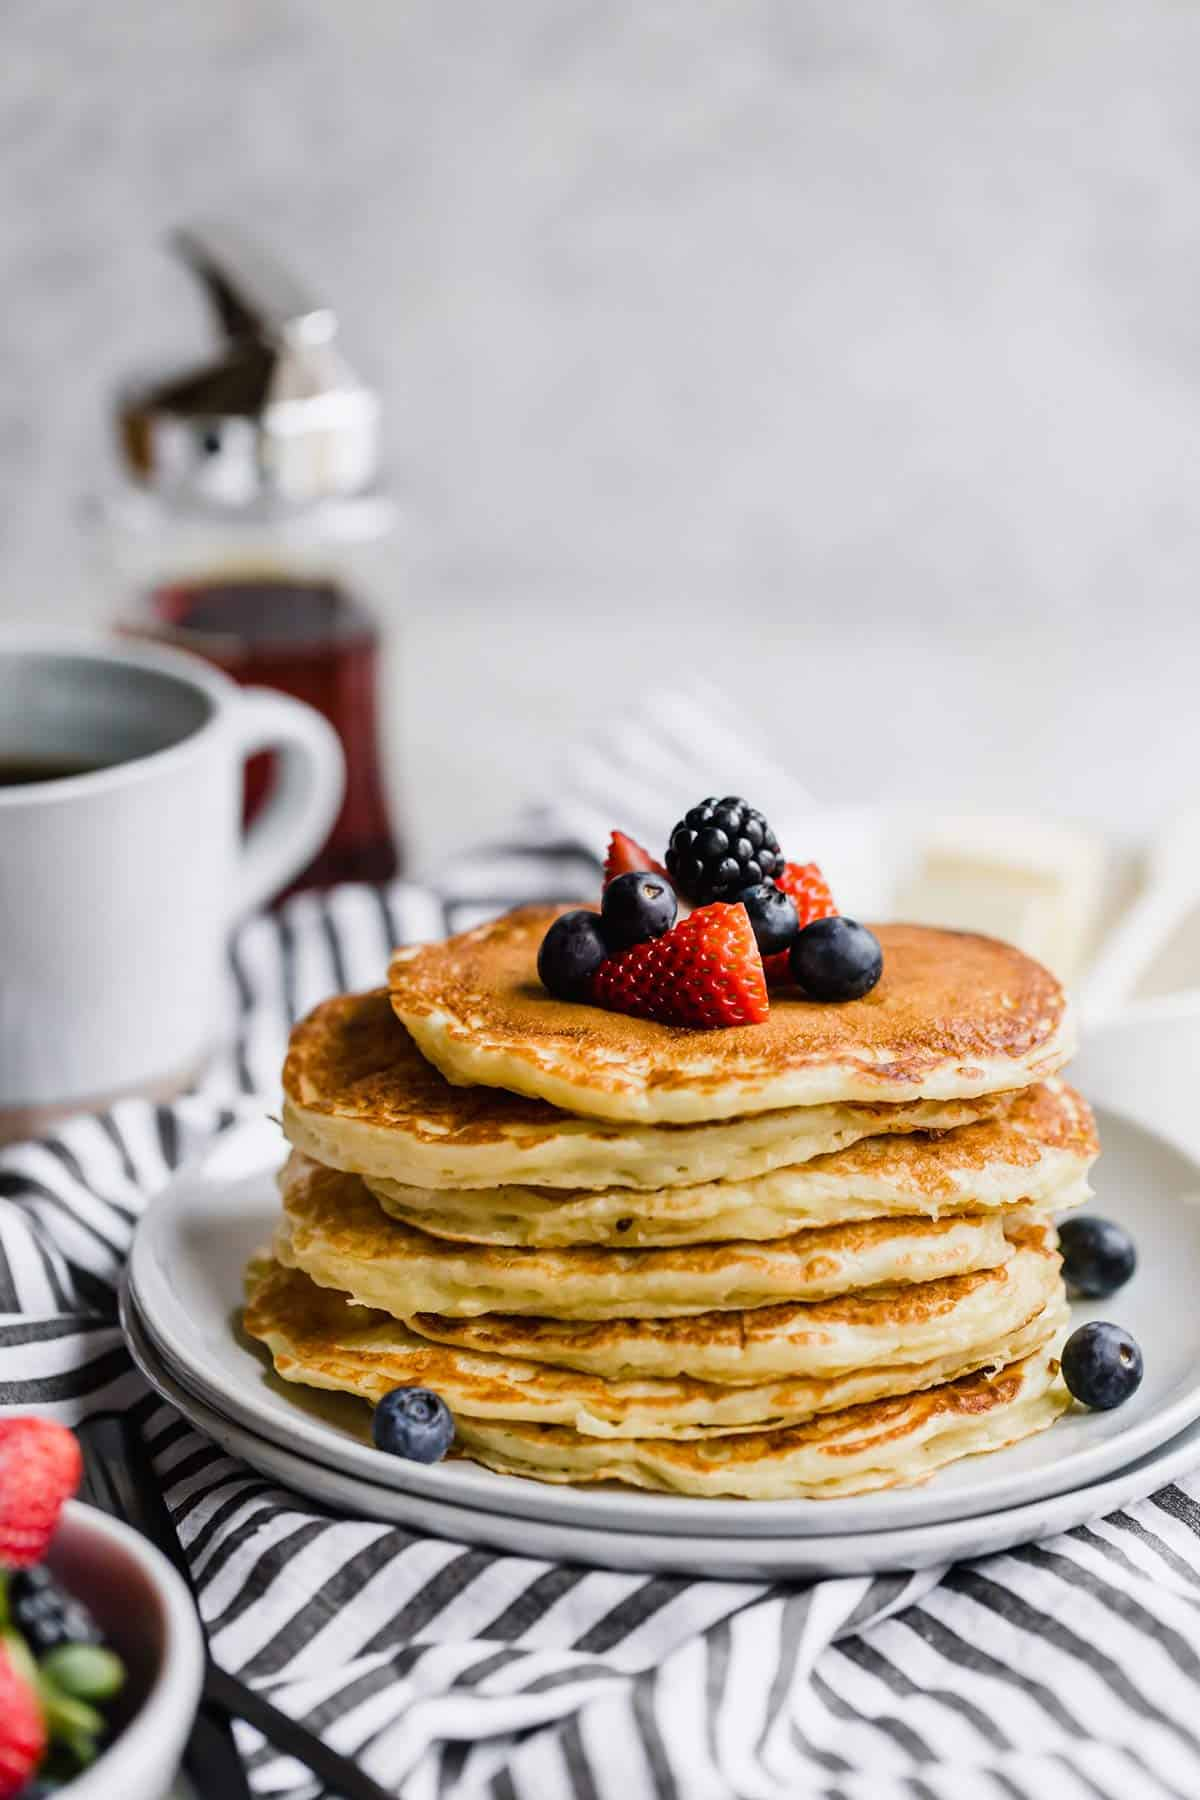 A stack of buttermilk pancakes on a blue and white striped towel with fresh berries on top and a jar of syrup in the back.